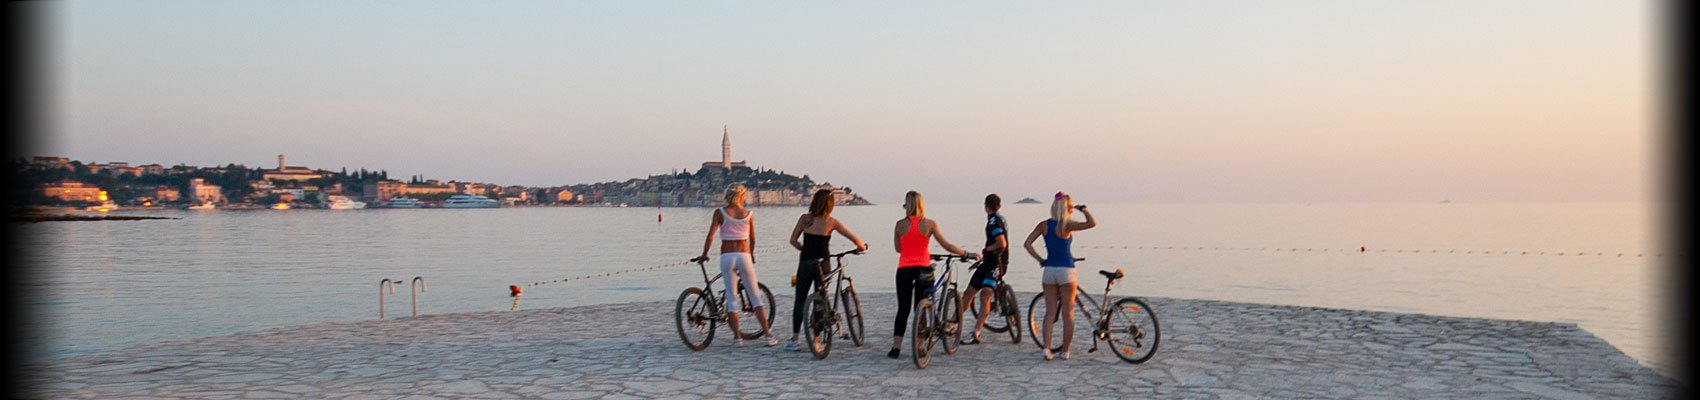 Saint Thomas Trail - Rovinj Bike Experience